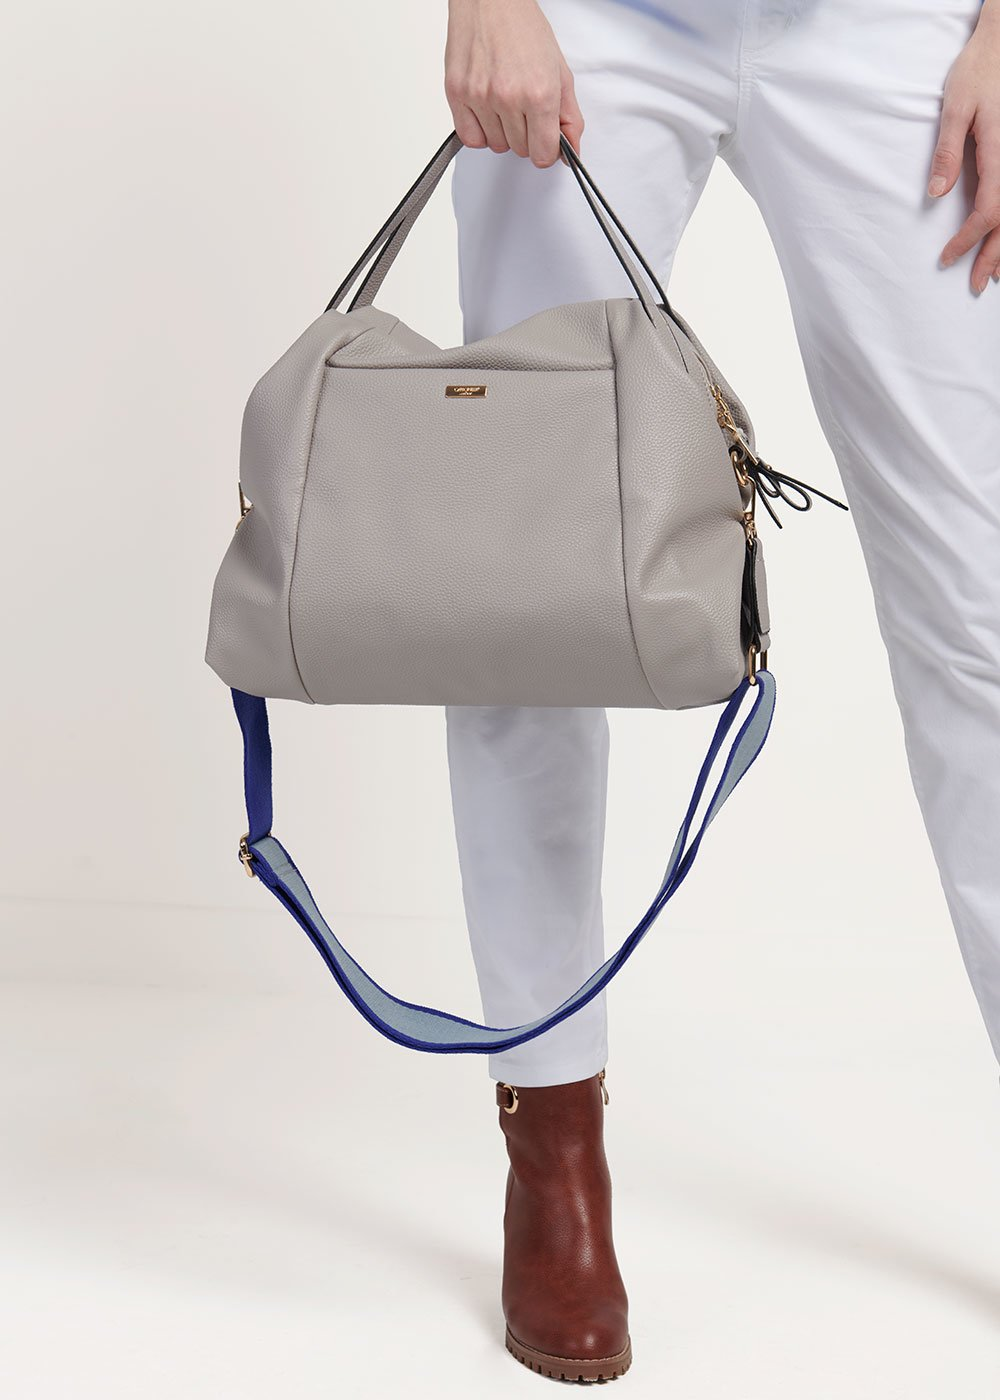 Baily shopping bag with shoulder strap detail - Grey - Woman